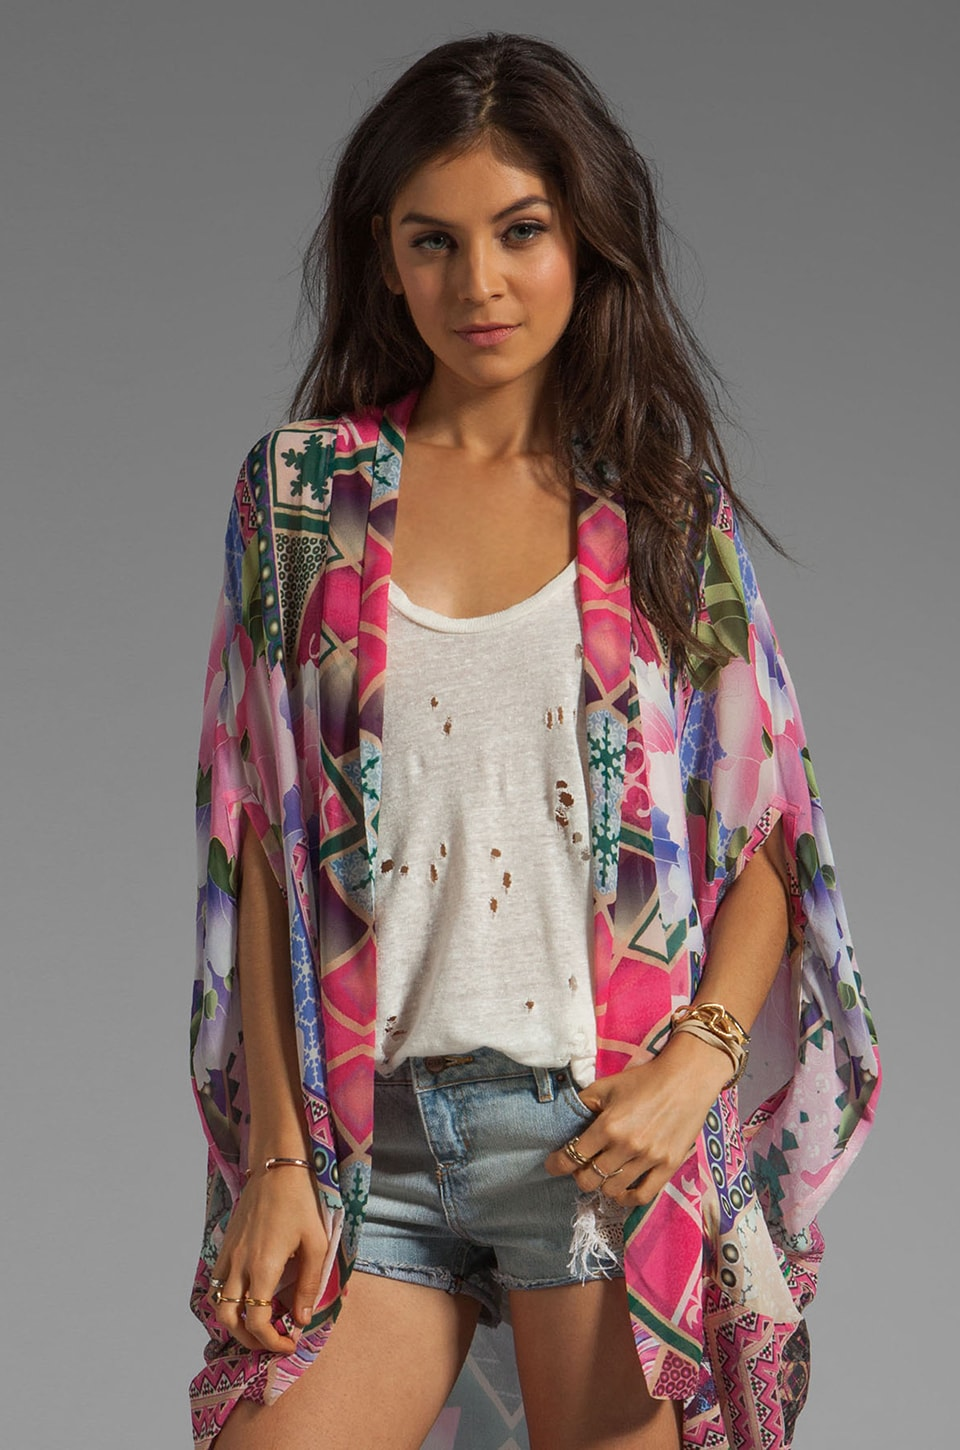 Camilla Moments in Eternity Open Front Cardigan in Violet Eyes